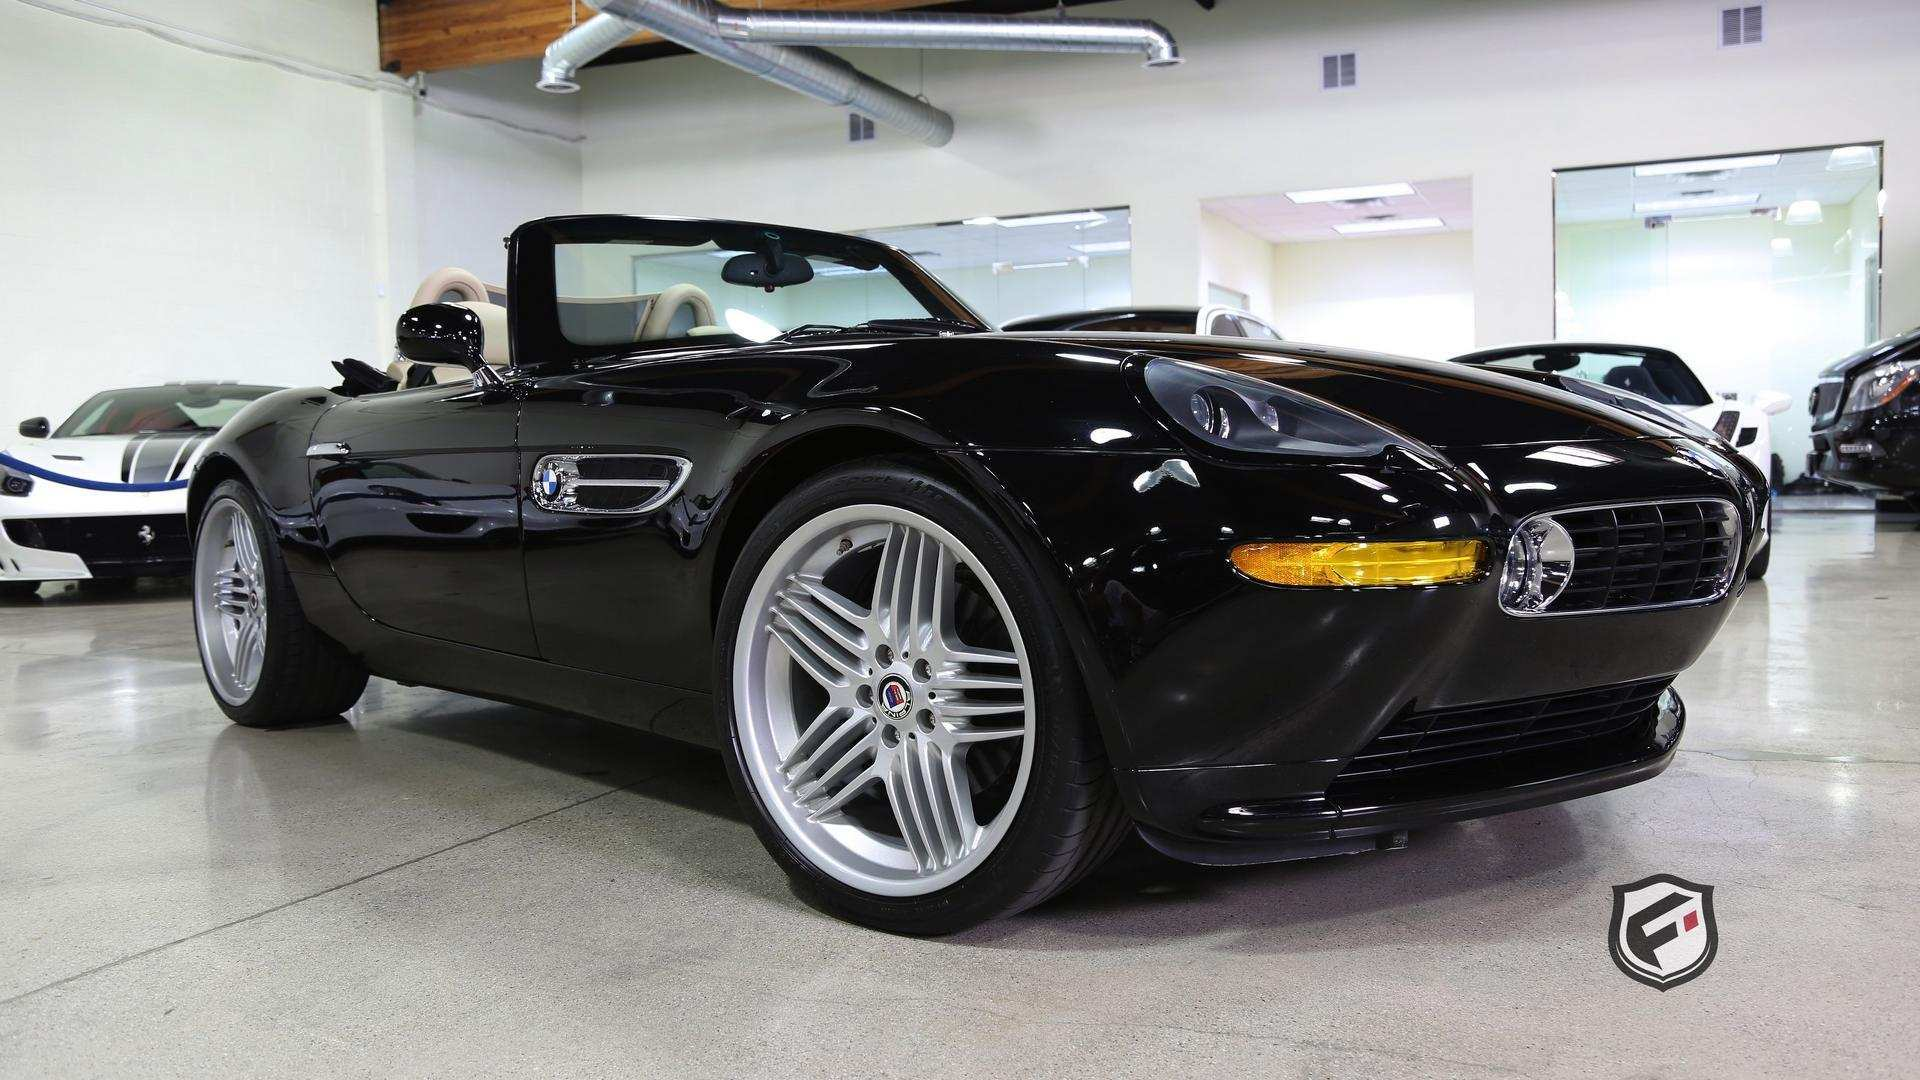 73 All New BMW Z8 2020 Redesign and Concept for BMW Z8 2020